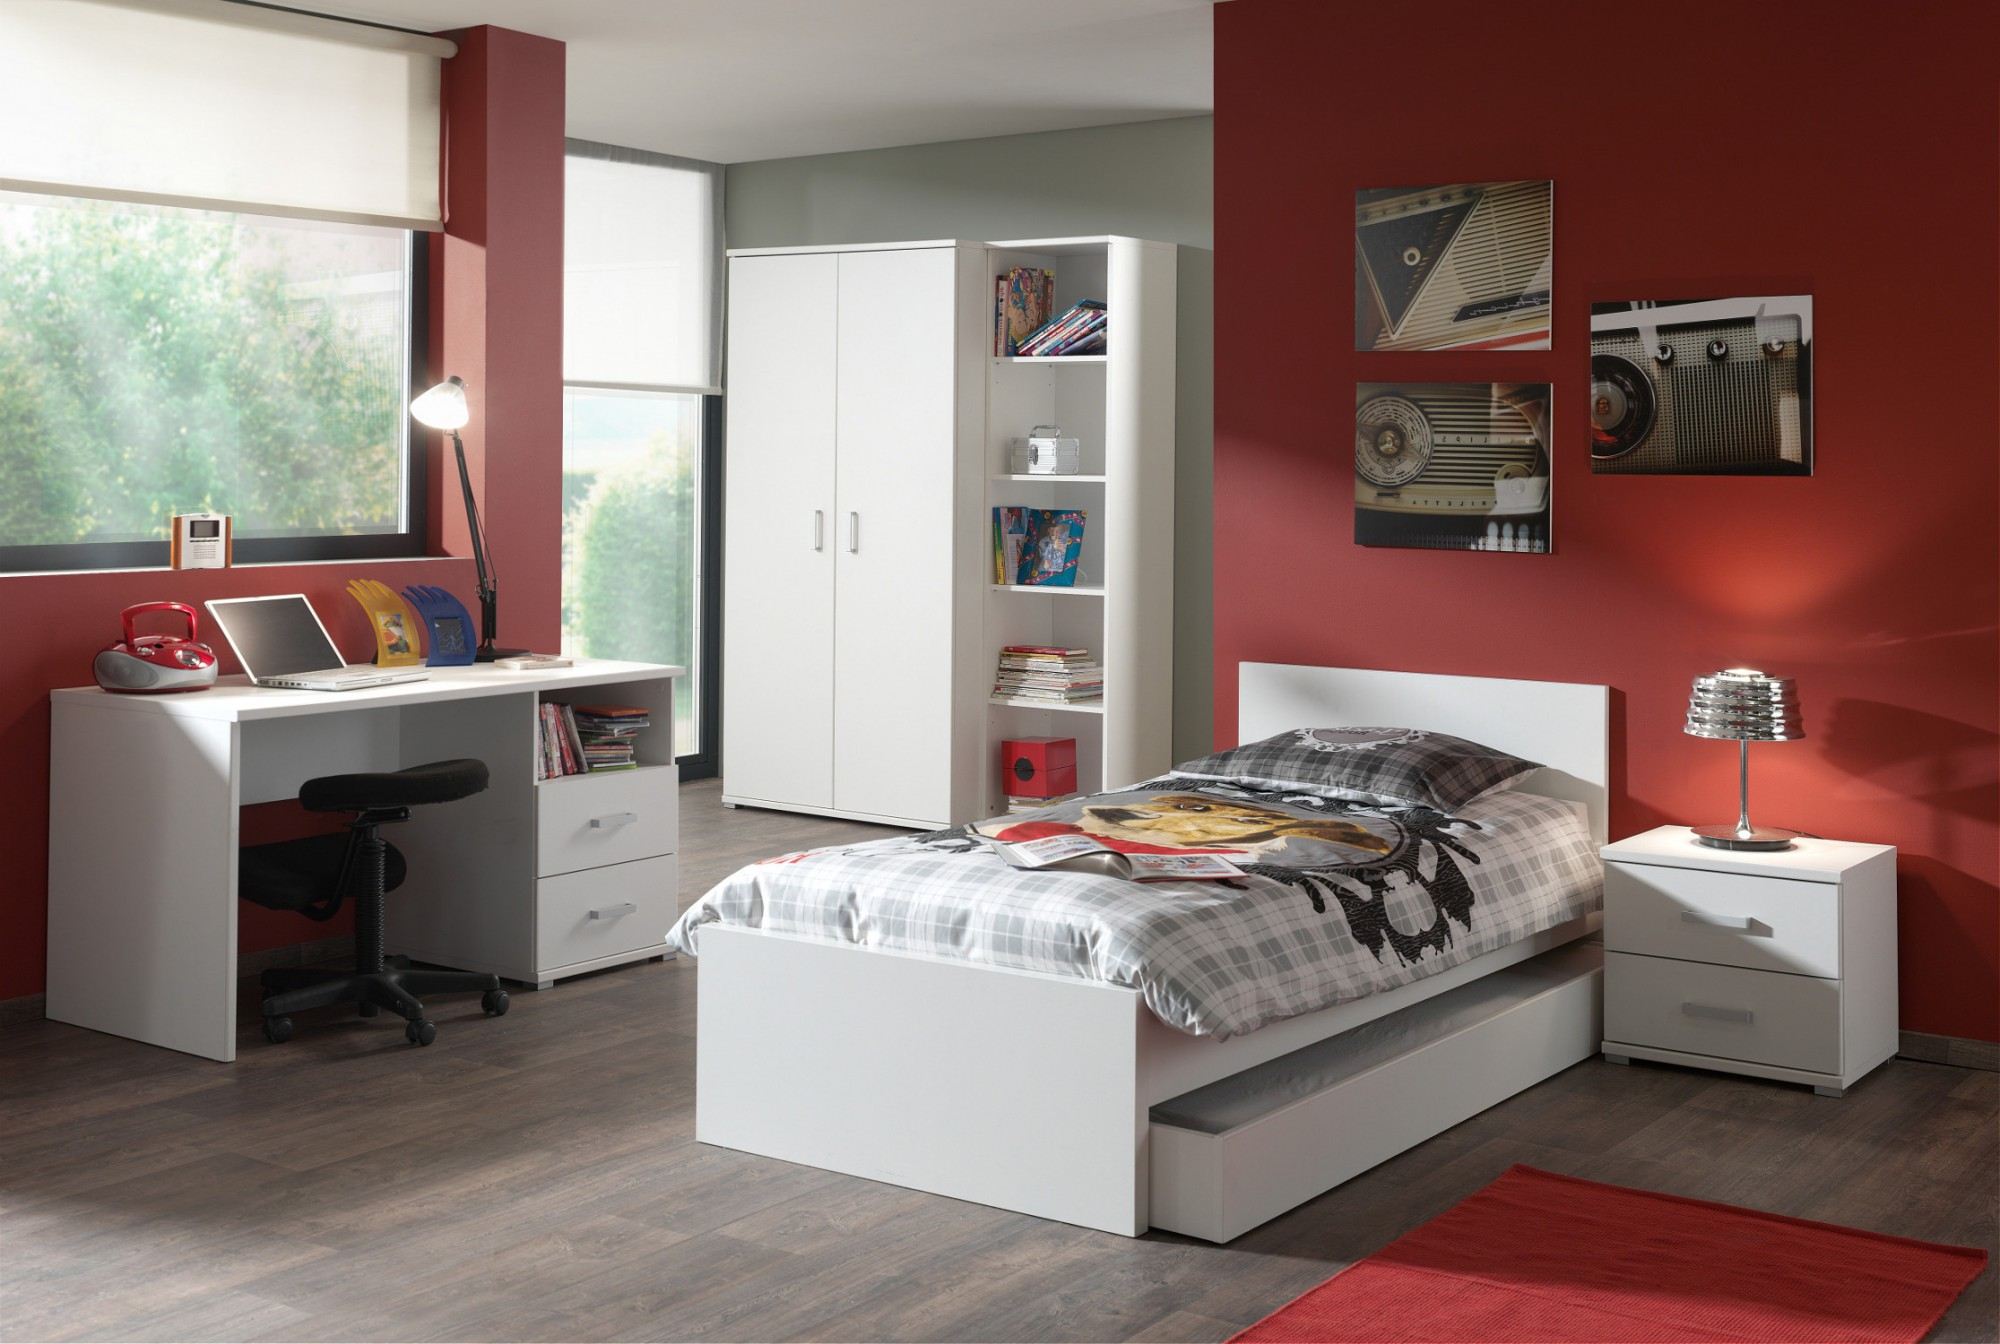 jugendzimmer milan komplett mit einzelbett. Black Bedroom Furniture Sets. Home Design Ideas